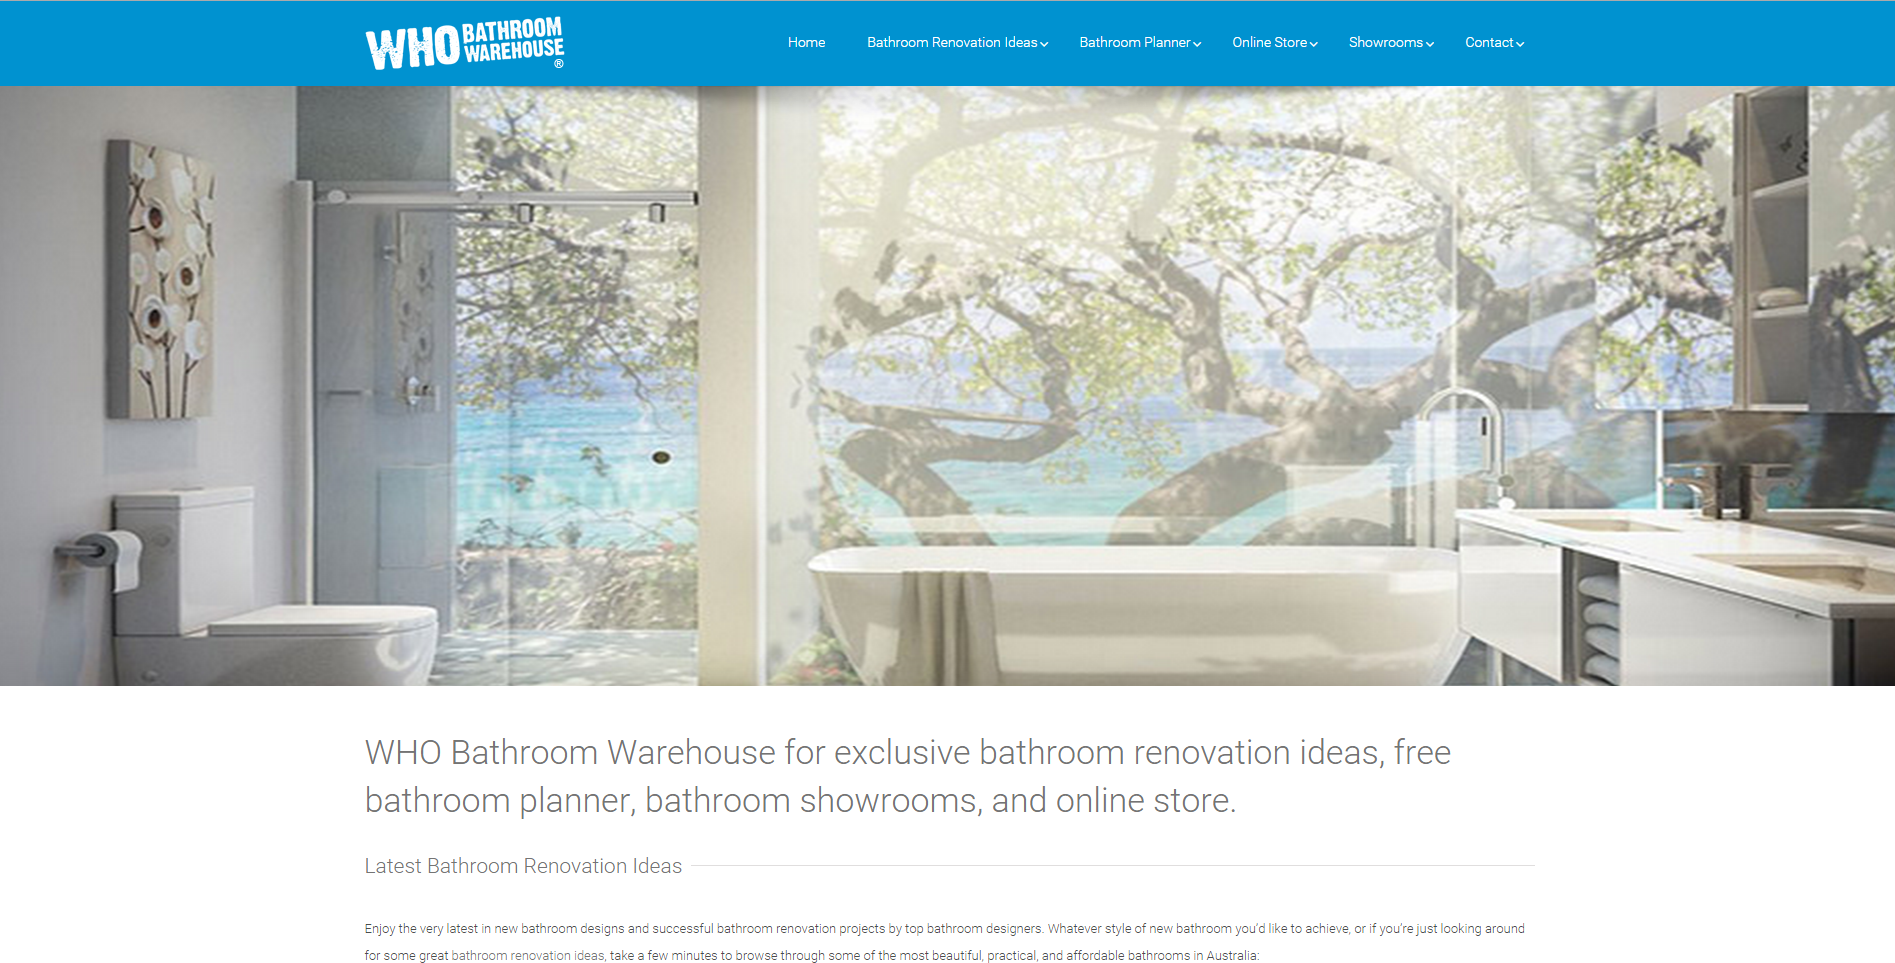 The new WHO Bathroom Warehouse main website - a virtual showroom linking through to the online store